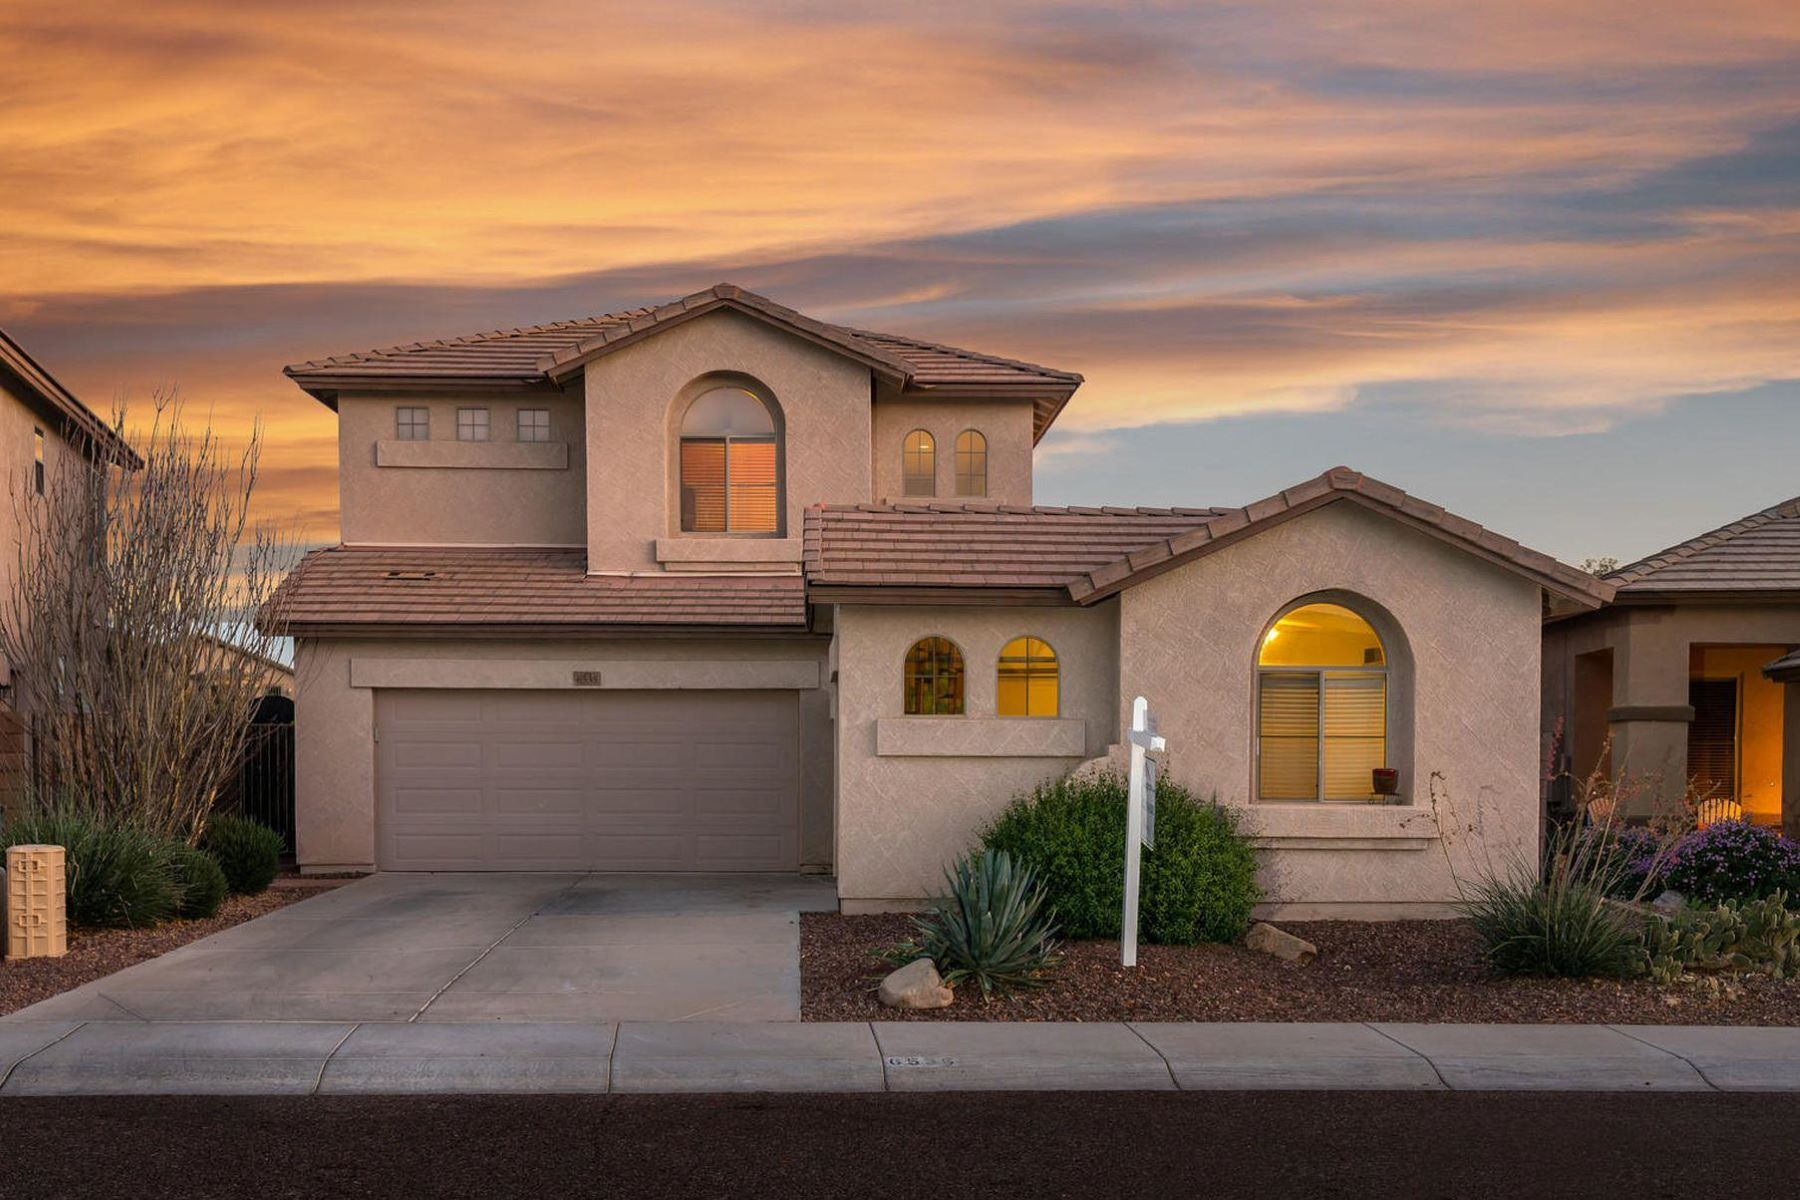 Maison unifamiliale pour l Vente à Eagle Highlands South 6535 W Tether Trl, Phoenix, Arizona, 85083 États-Unis